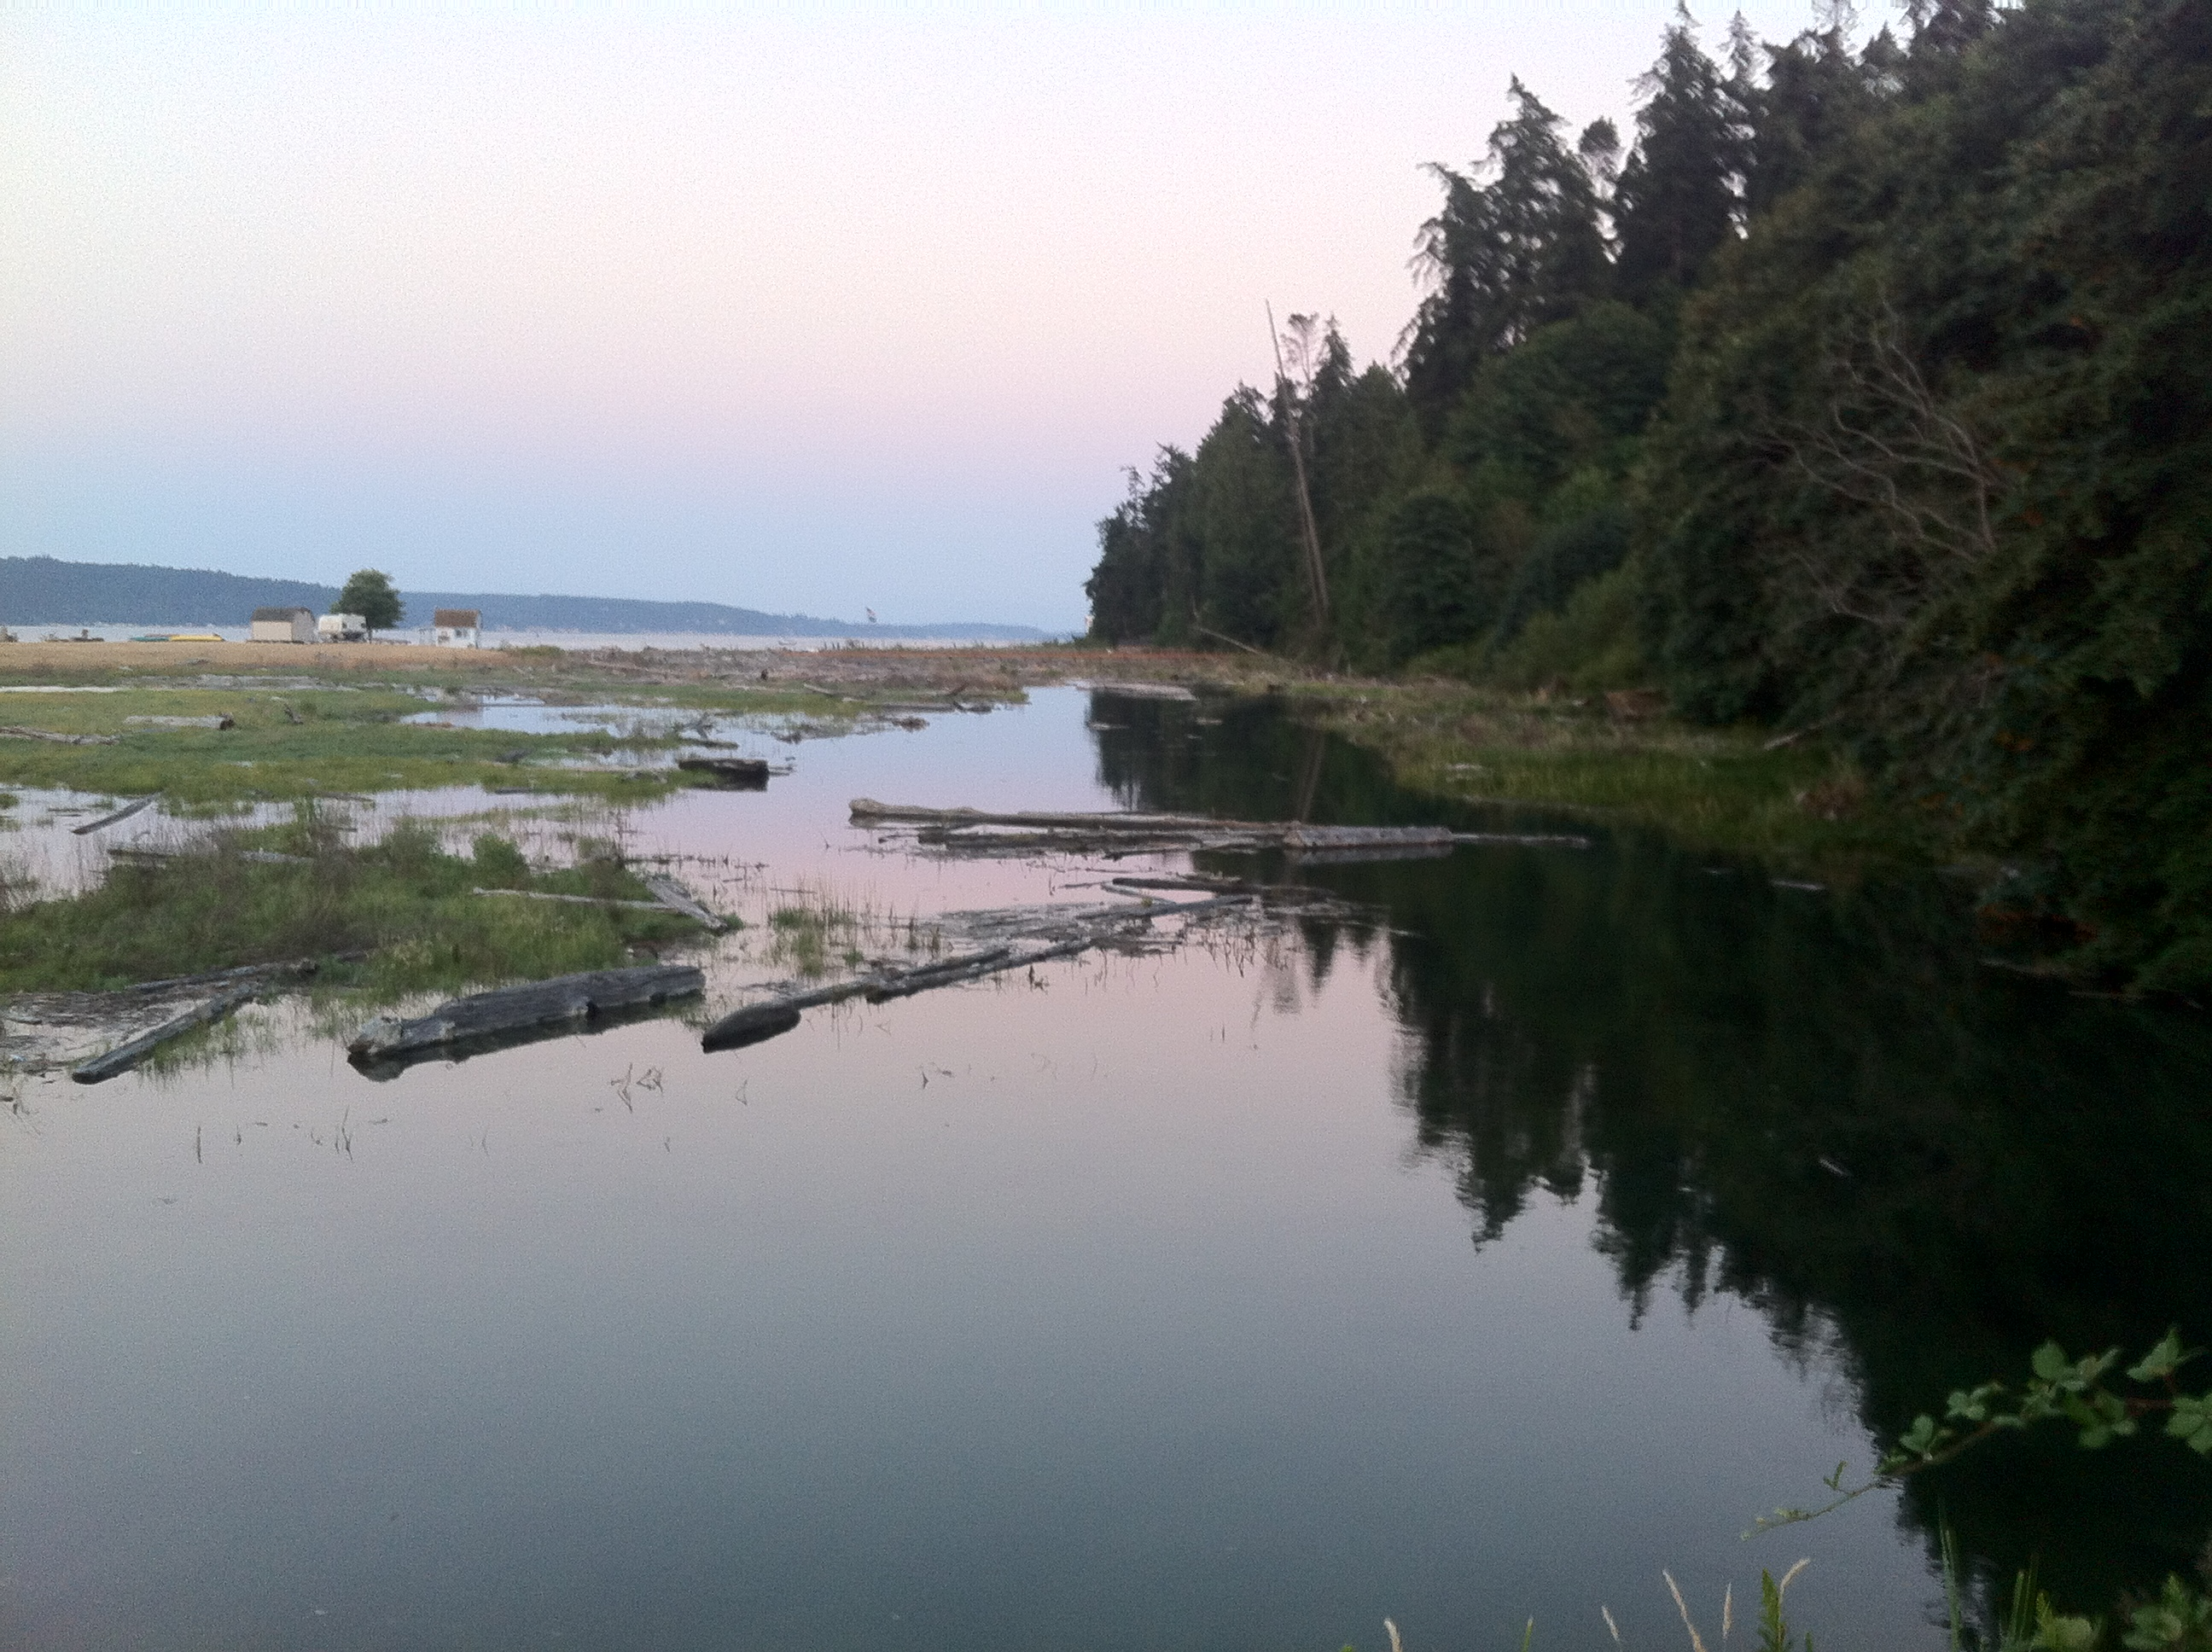 The mission of Sunnyshore Studio: sharing the beauty of Camano Island with the world